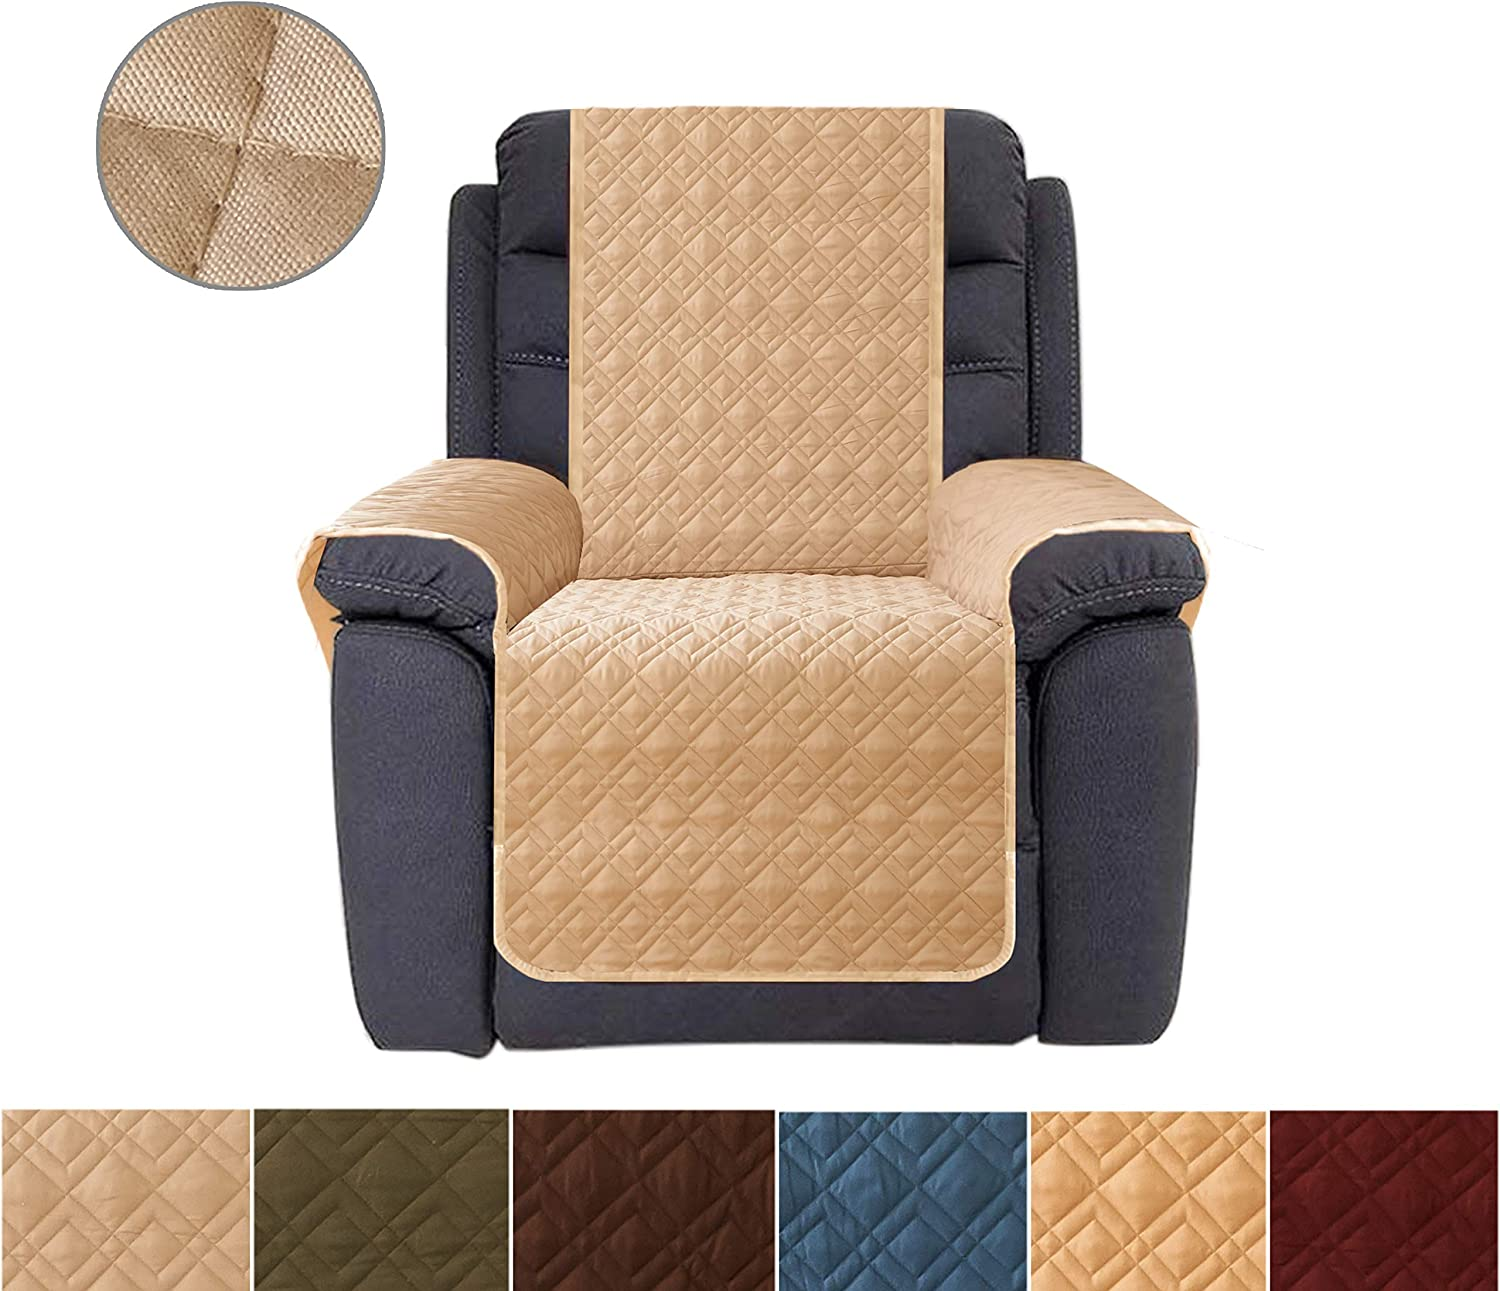 Sofa Cover, Reversible Quilted Furniture Protector, Ideal Loveseat Slipcovers for Pets & Children, Water Resistant, Will Keep your Couch Stain, Dirt & Scratches-Free   Double line checkered grid Khaki